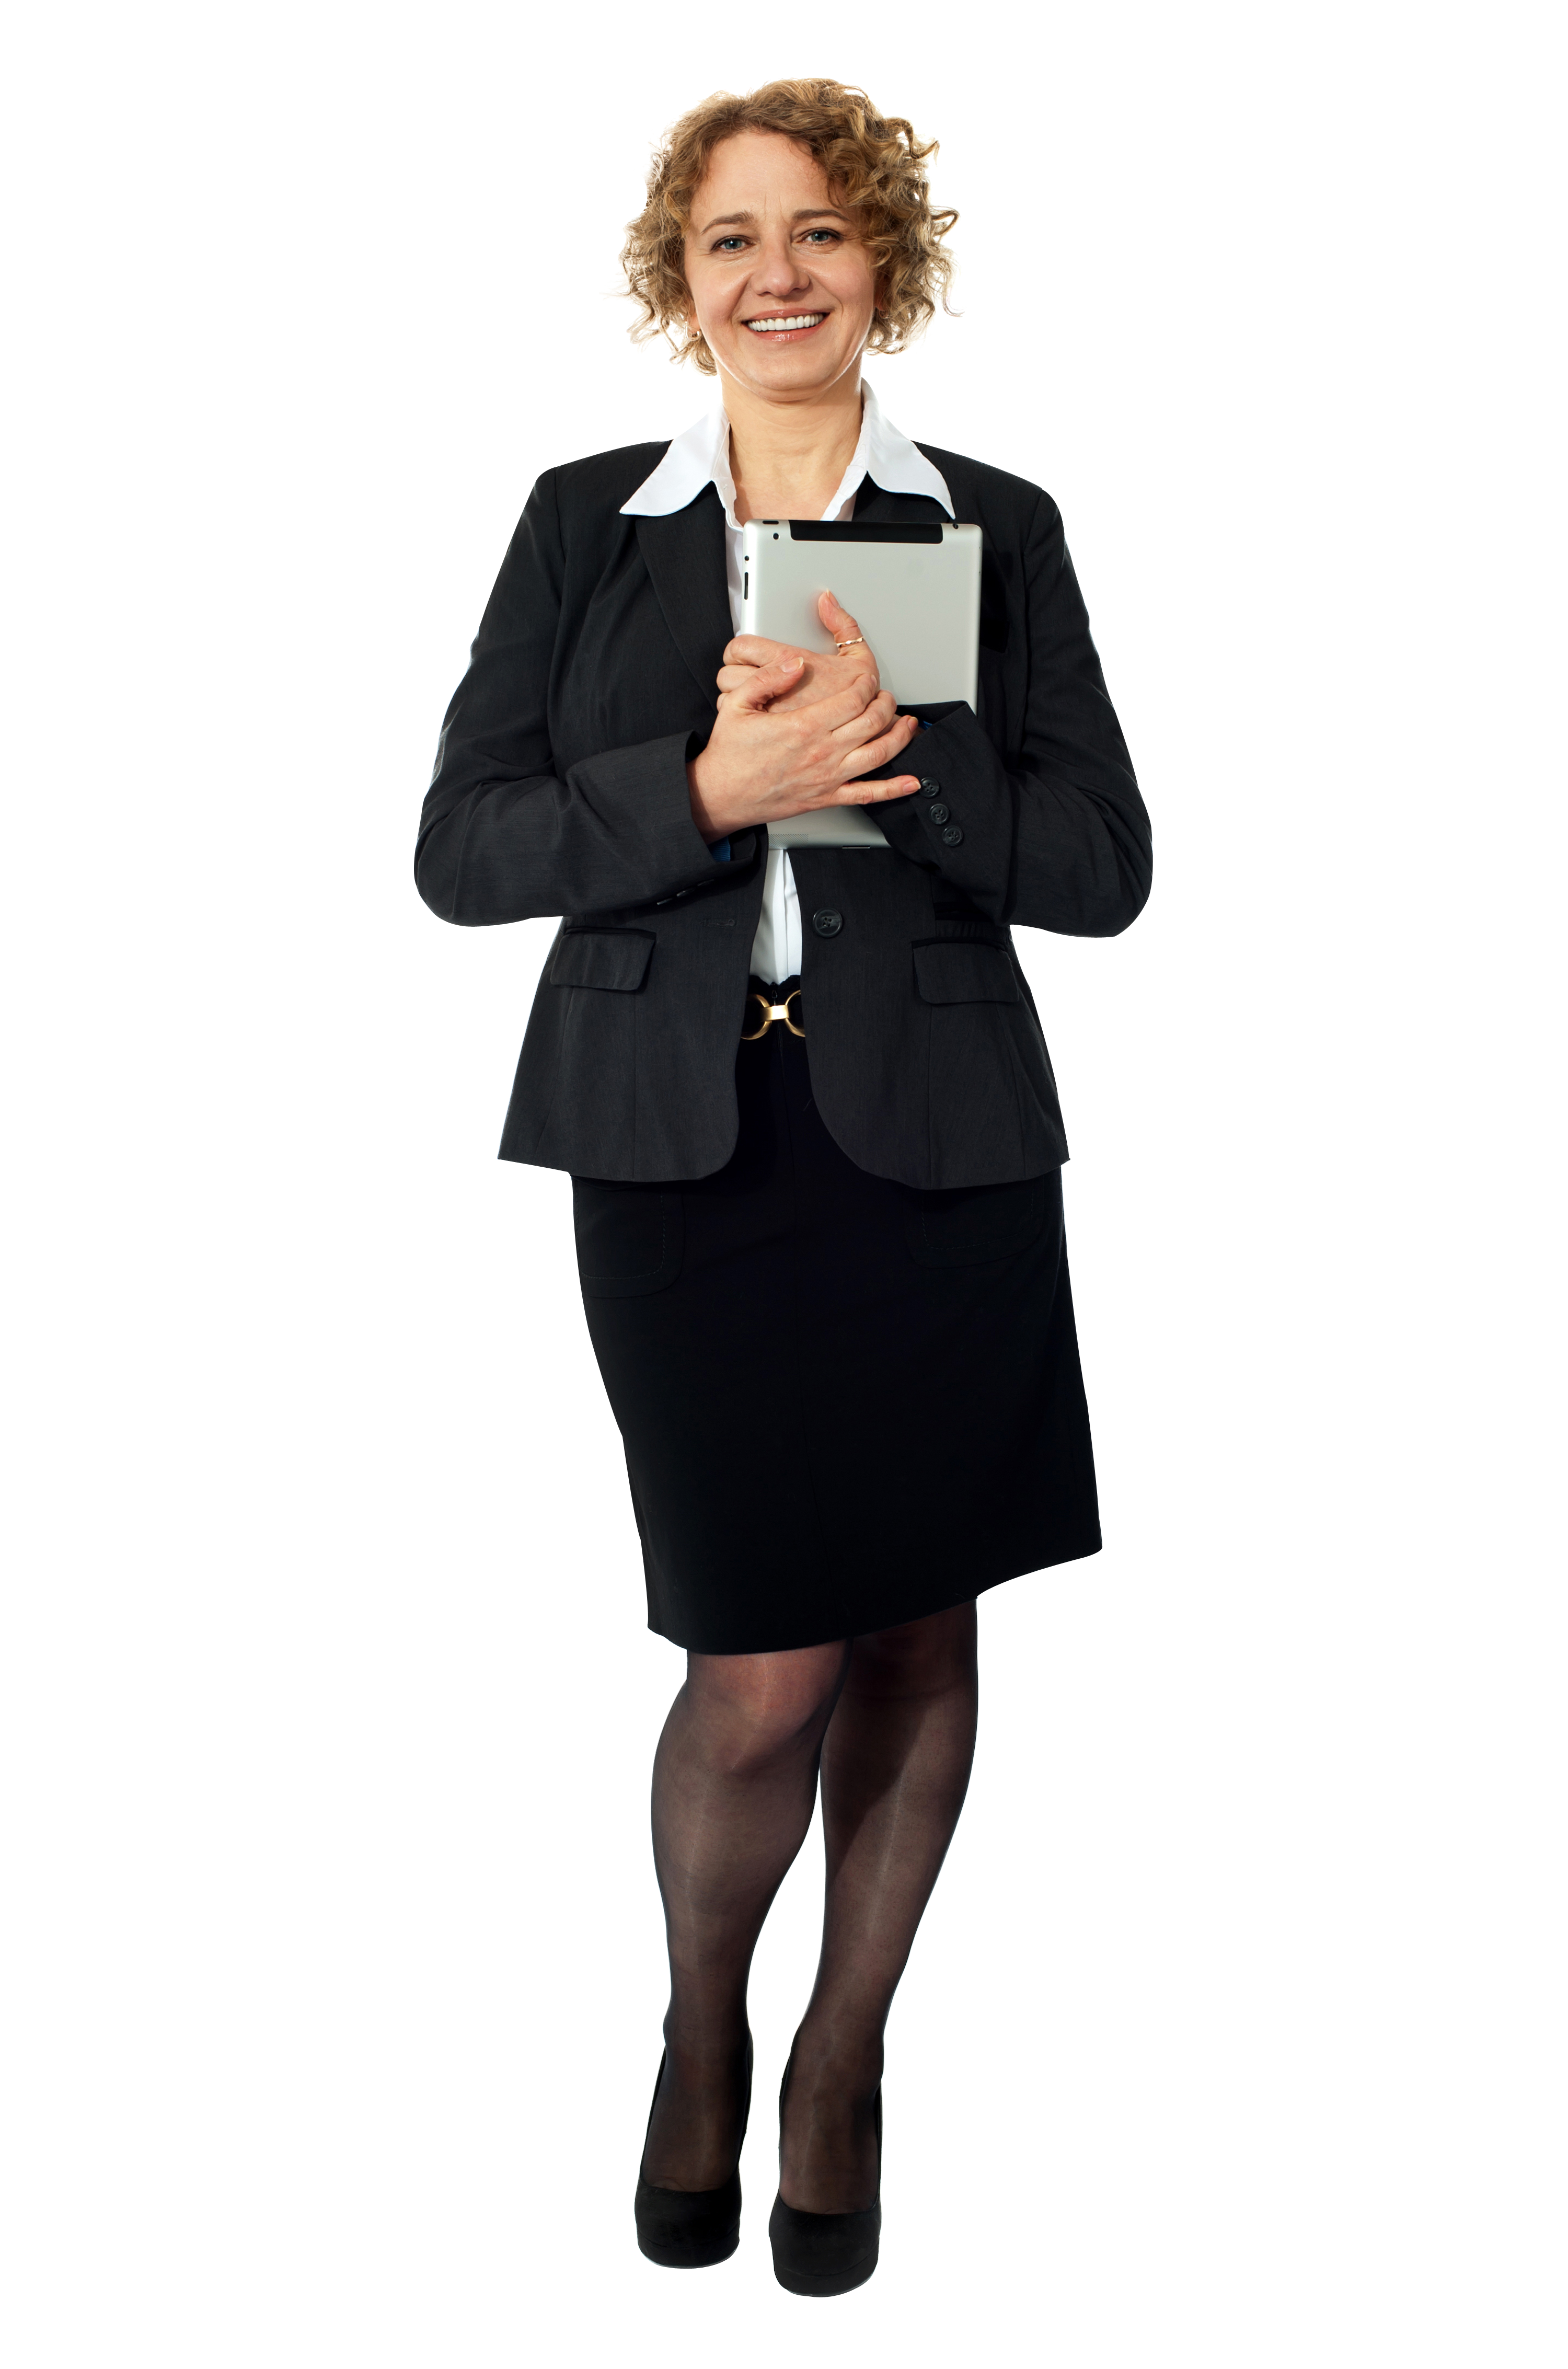 Happy Businesswoman With Arms Crossed Transparent Png Free Image By Rawpixel Com Felix Business Women Photography Women Dress Illustration